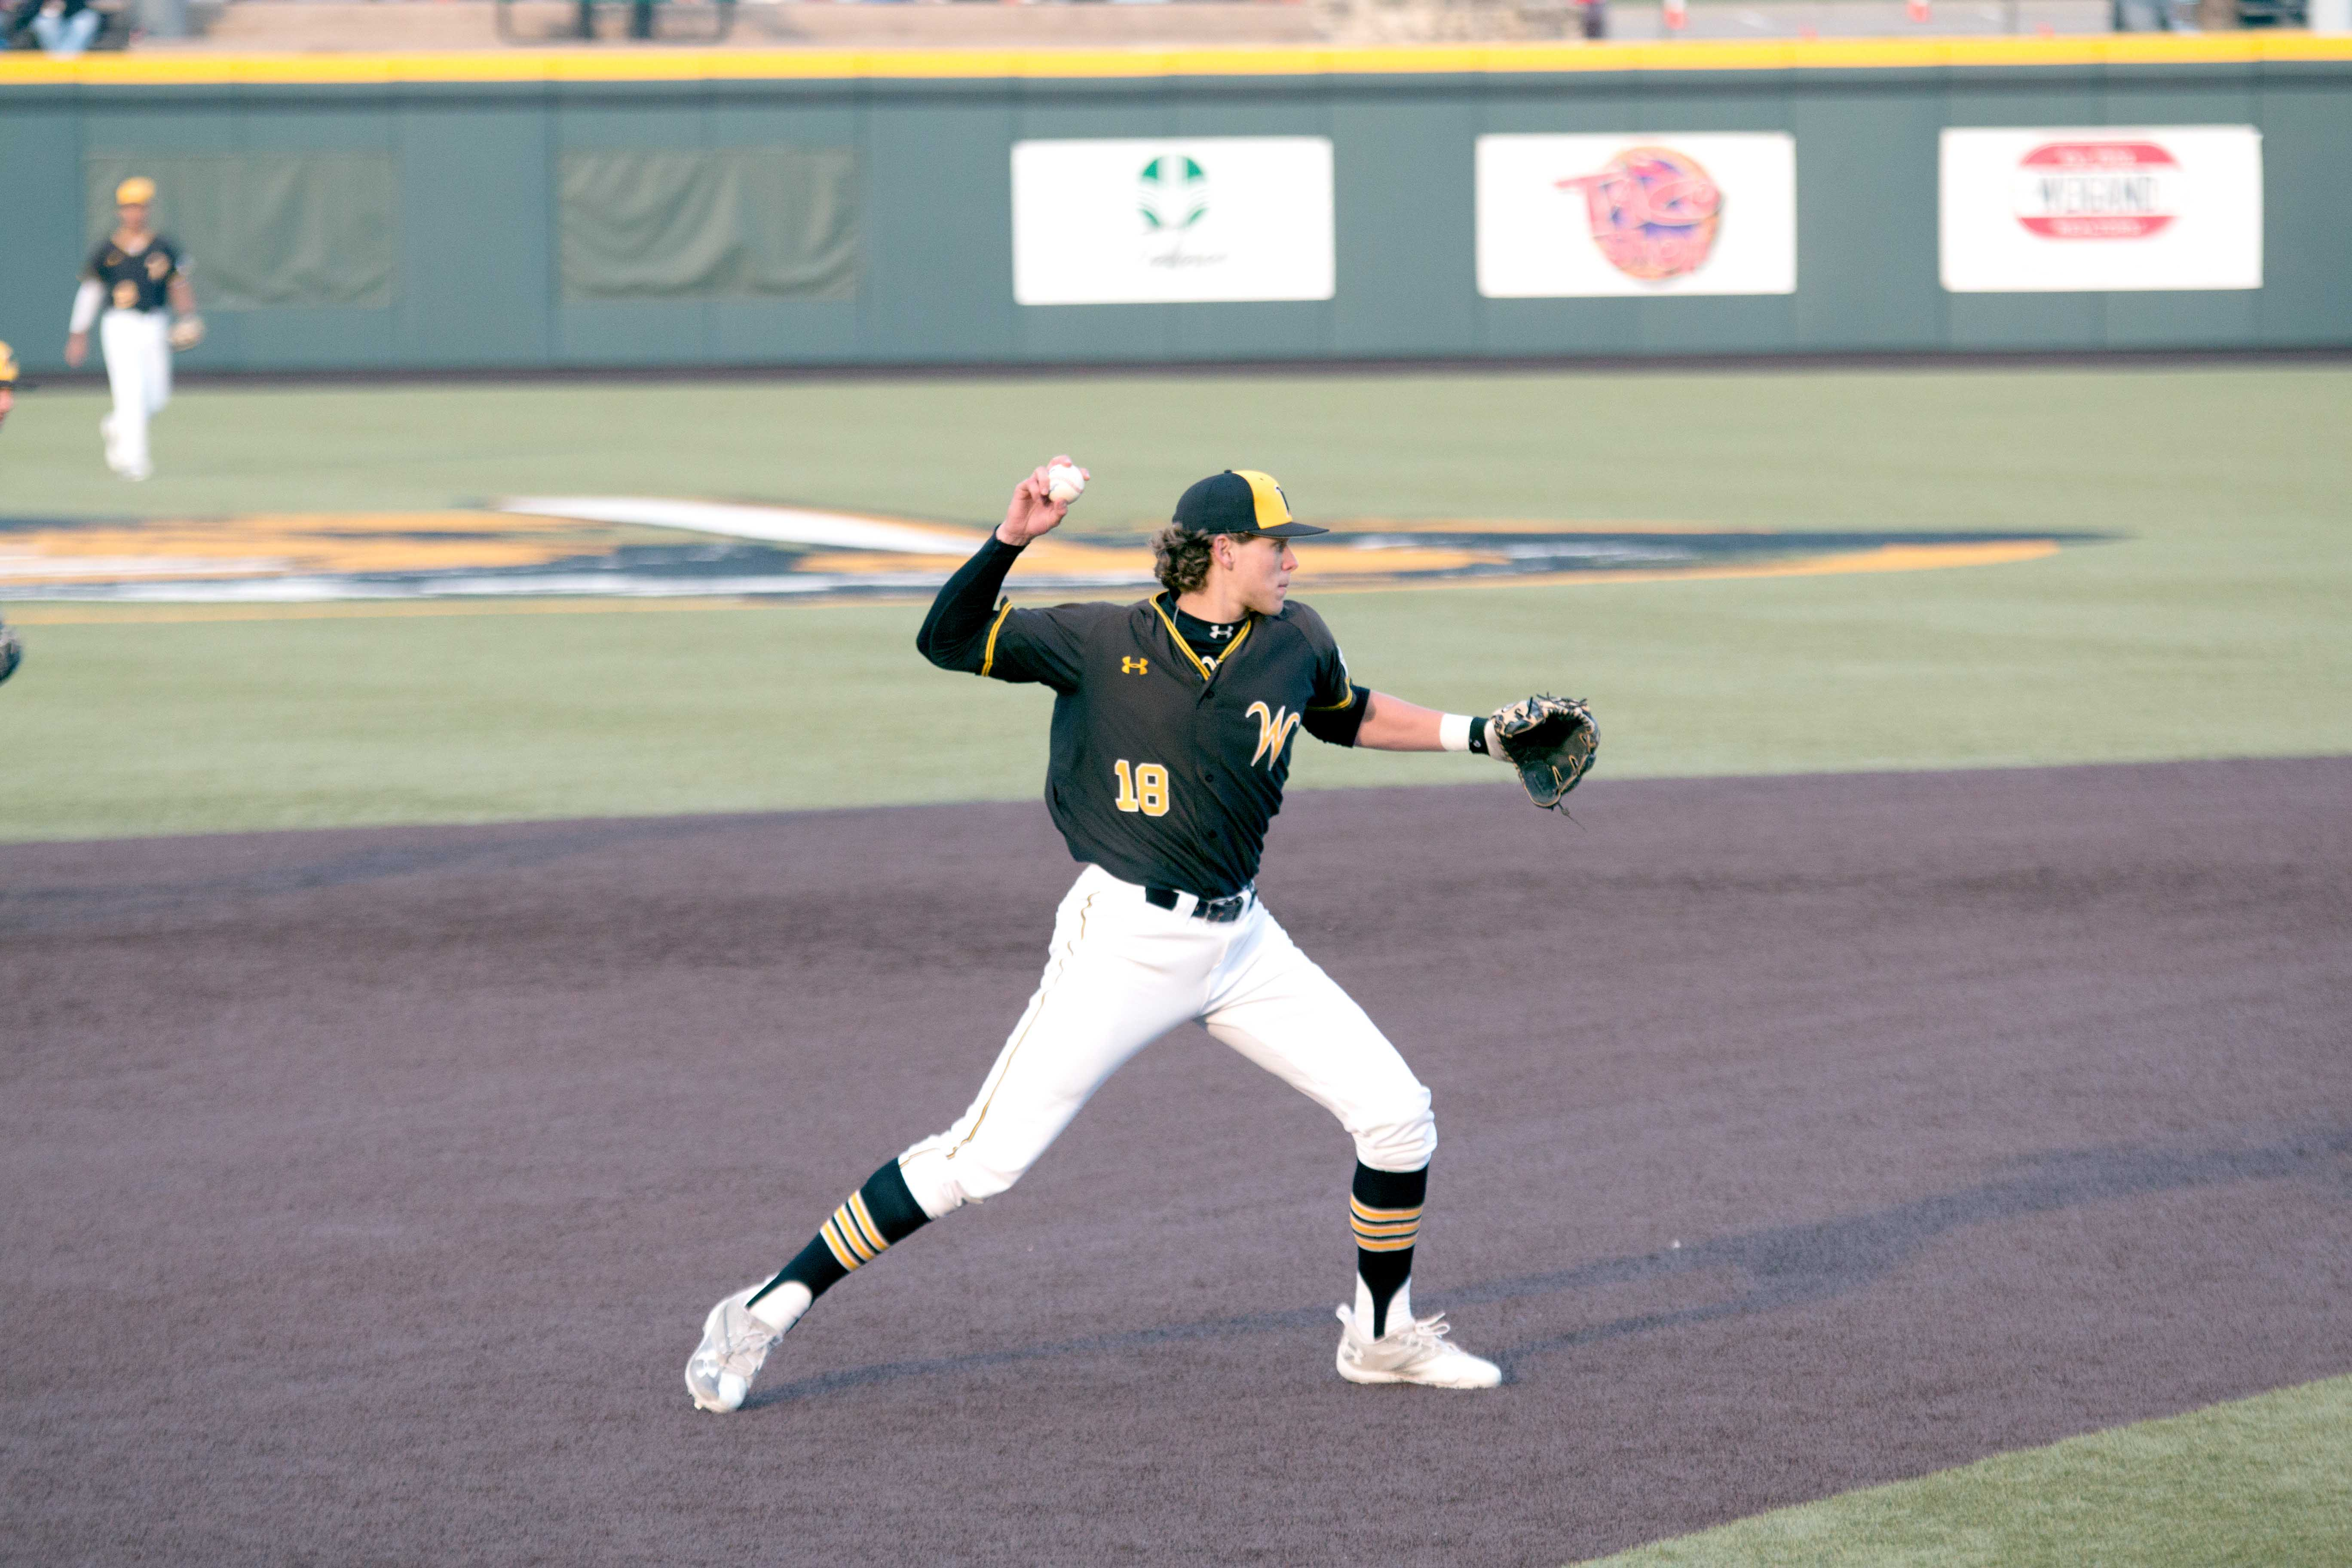 Wichita State sophomore Alec Bohm throws to first base during a game against Valparaiso. WSU dropped the rubber match against Missouri State on Sunday.  (File photo)